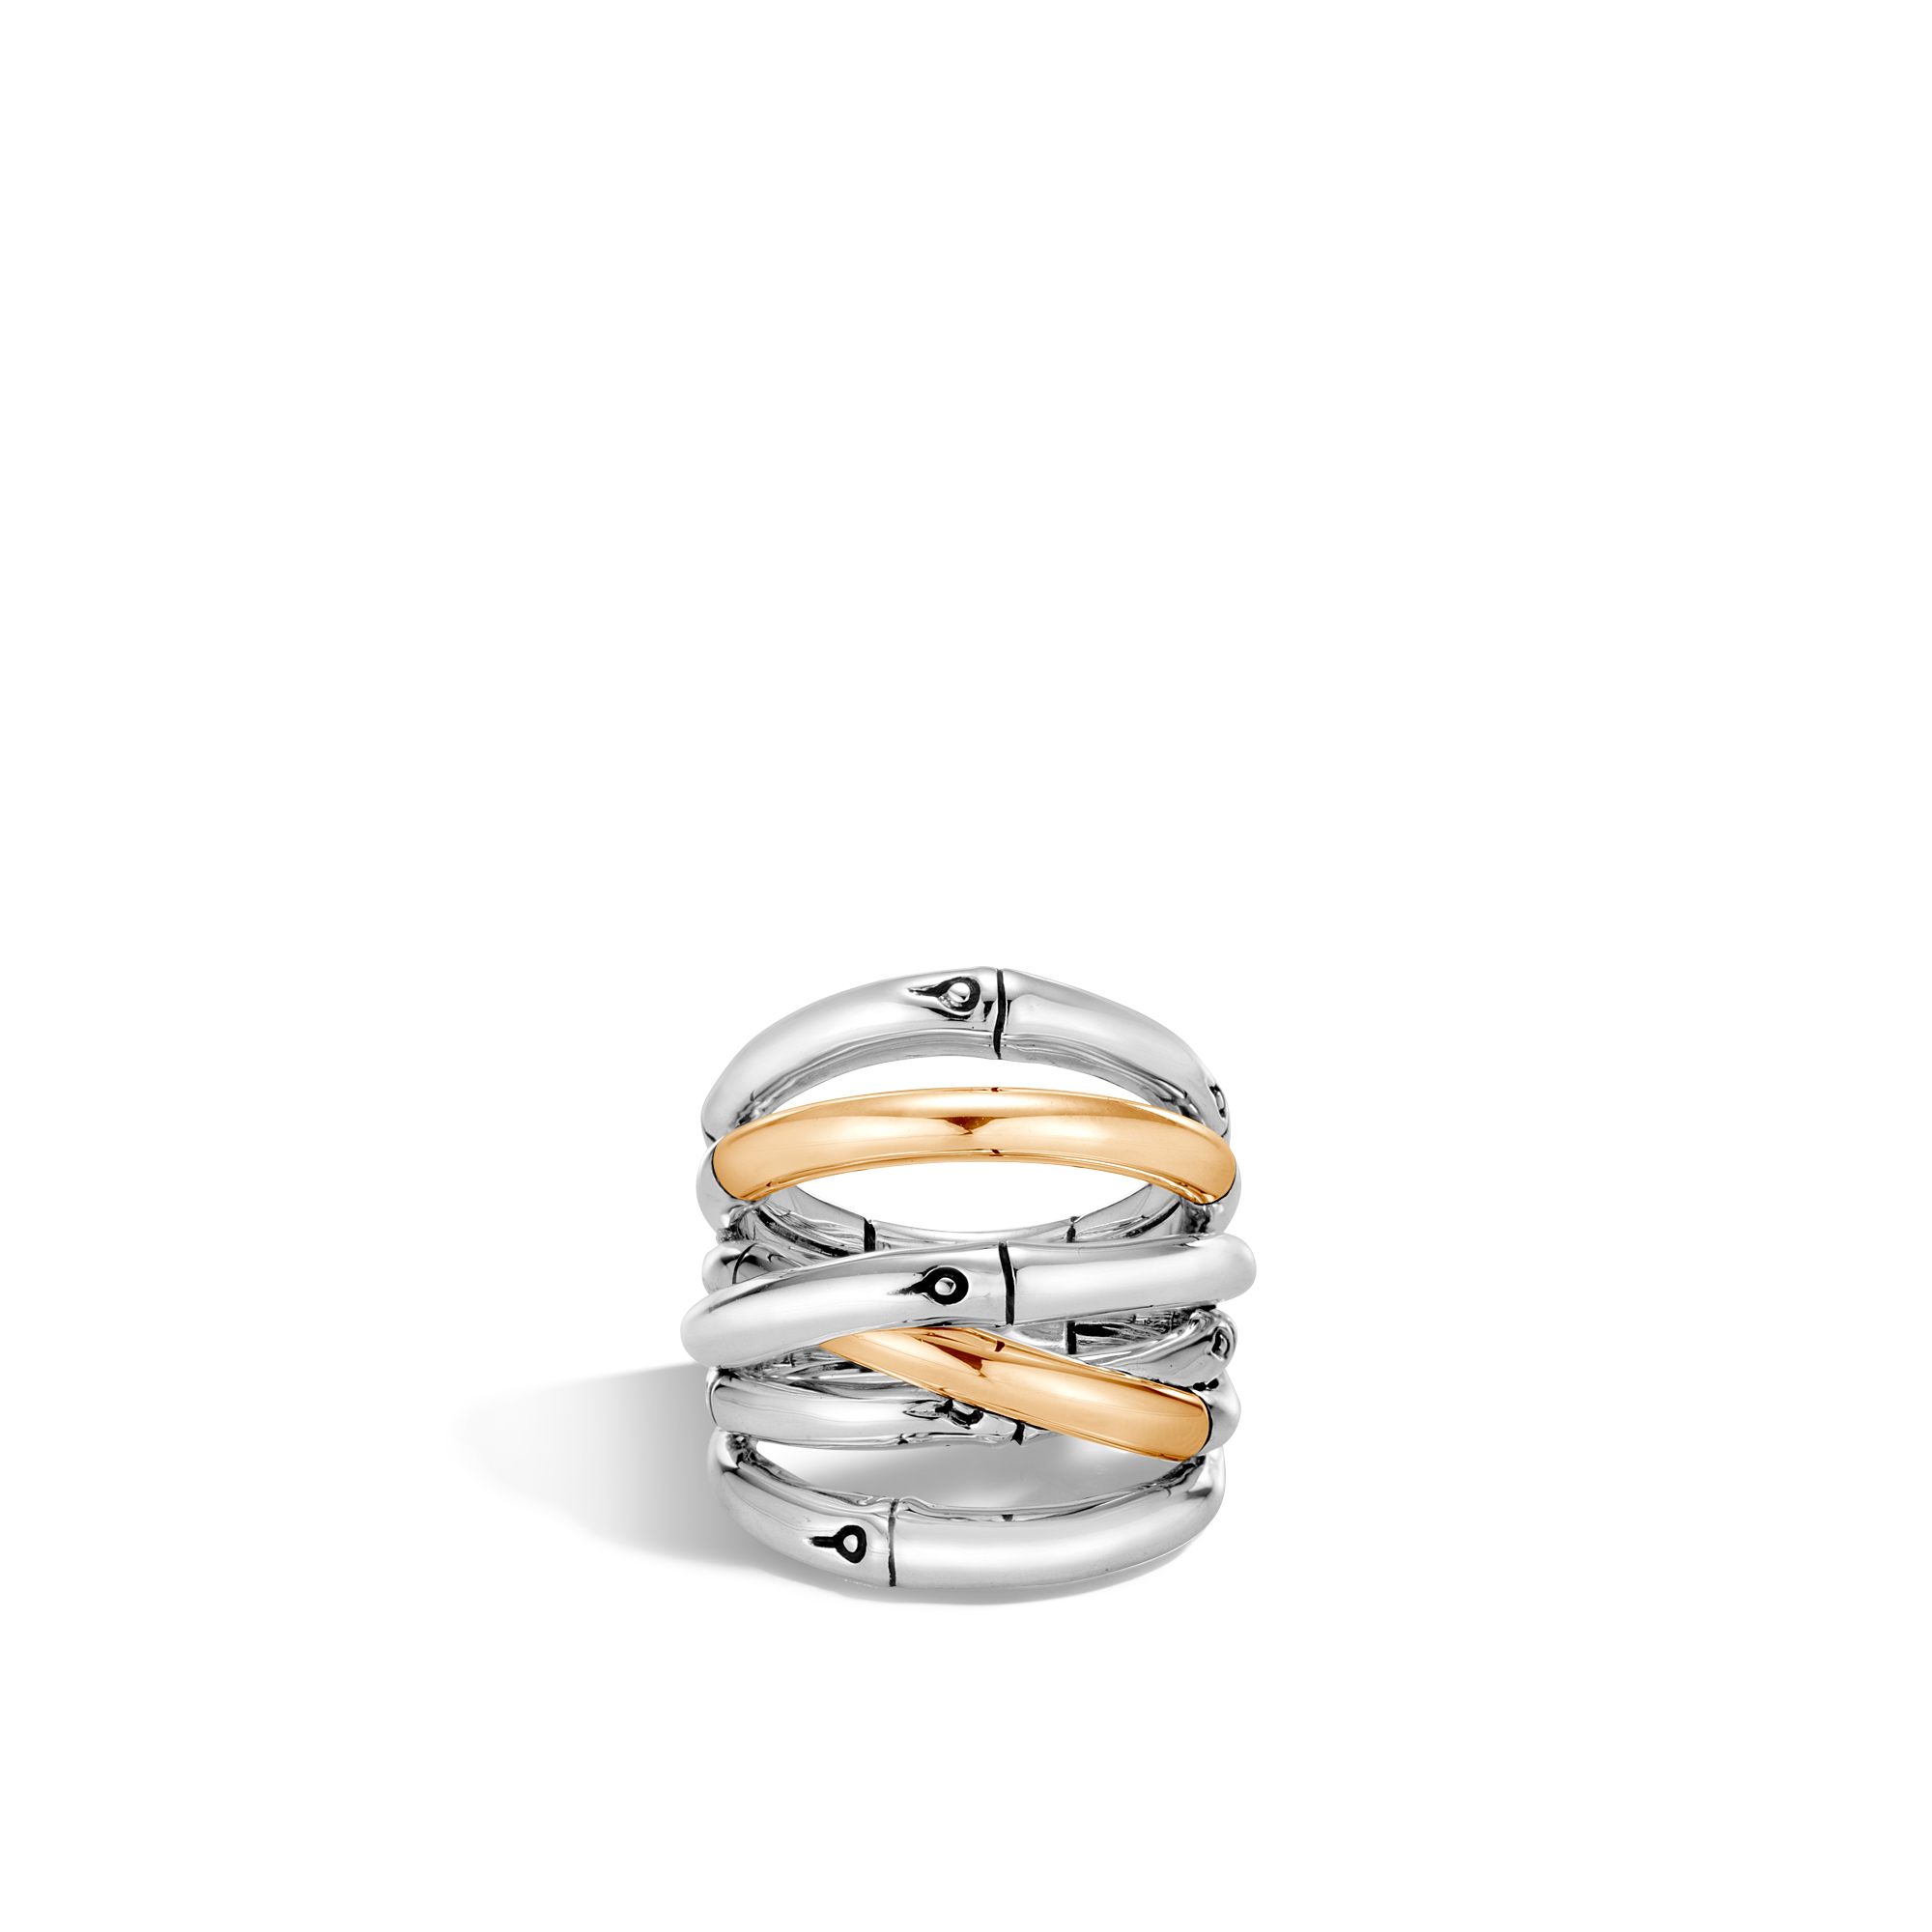 Bamboo Ring in Silver and 18K Gold, , large